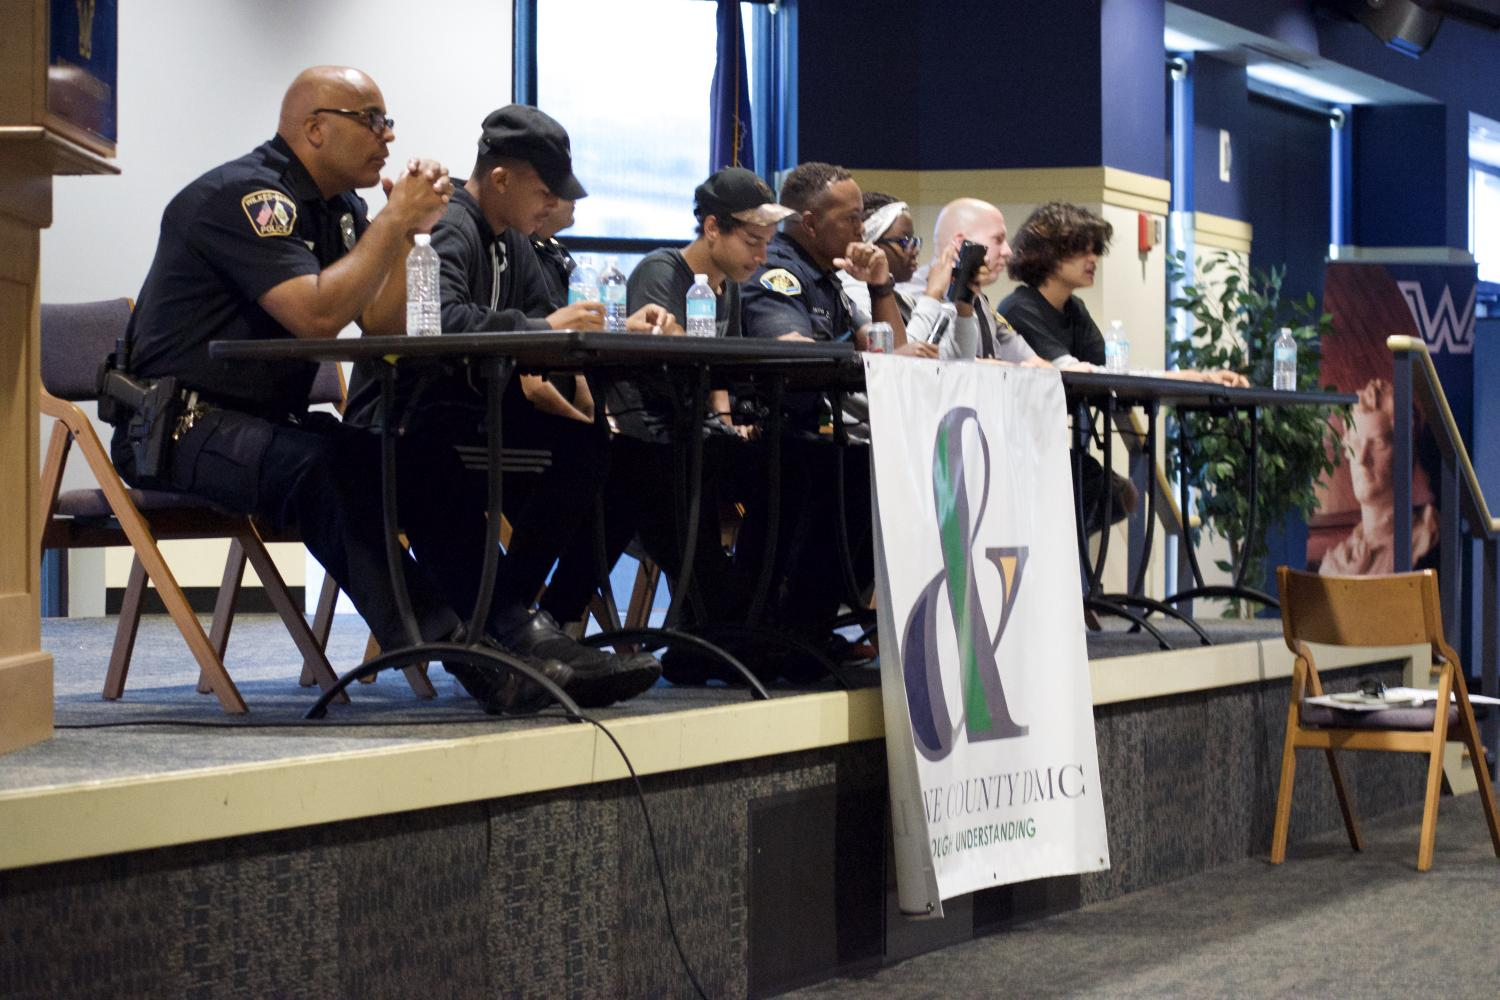 The panel of local police officers and youth working to reach an understanding through discussion of common misunderstandings in city crime.